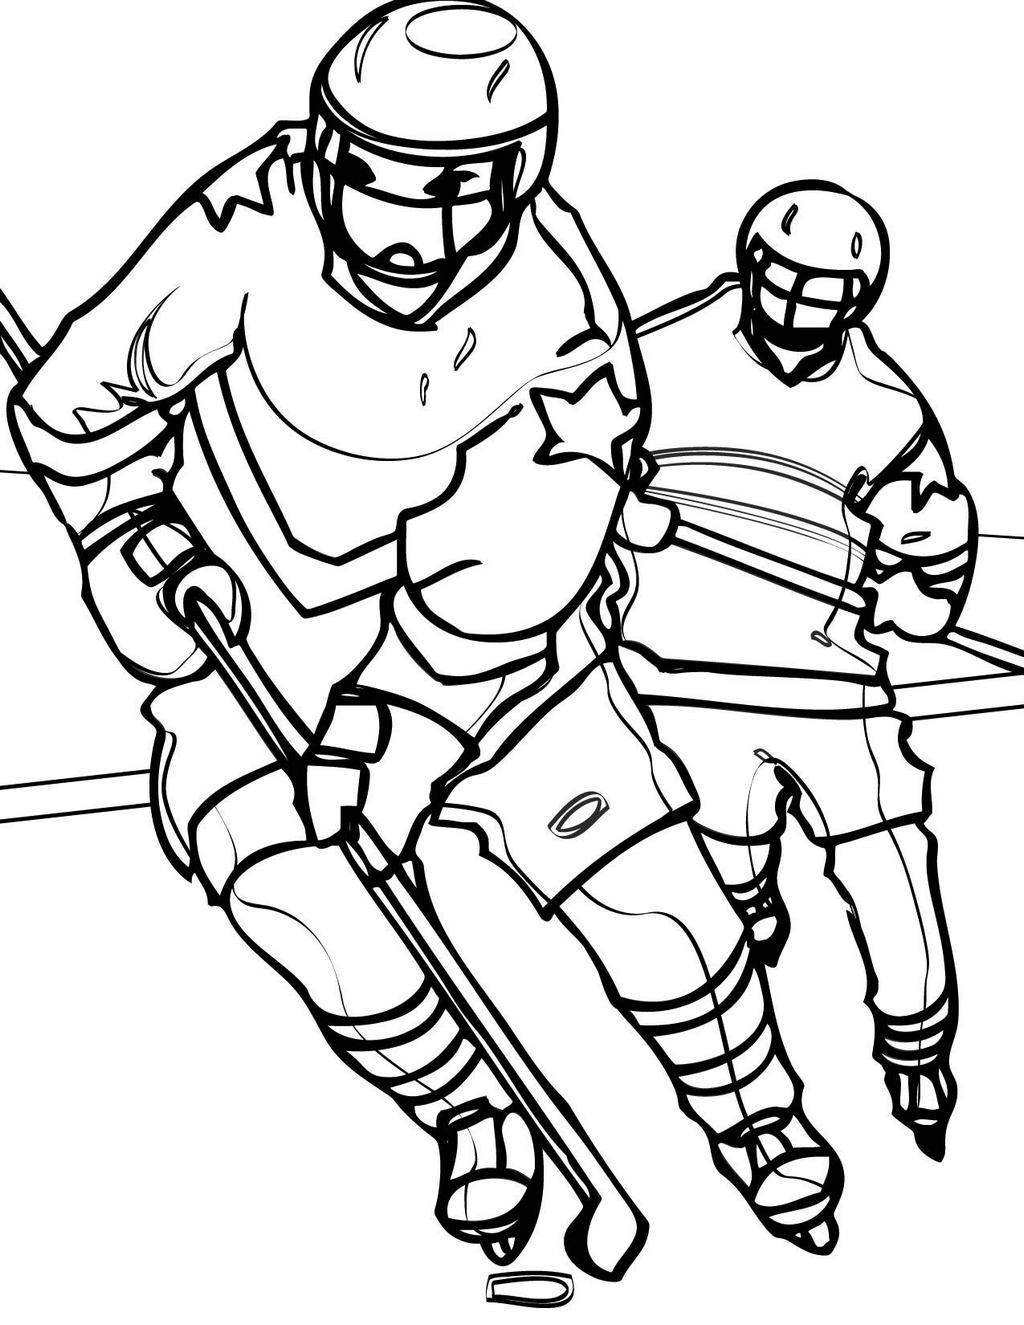 hockey jersey and uniform coloring sheet